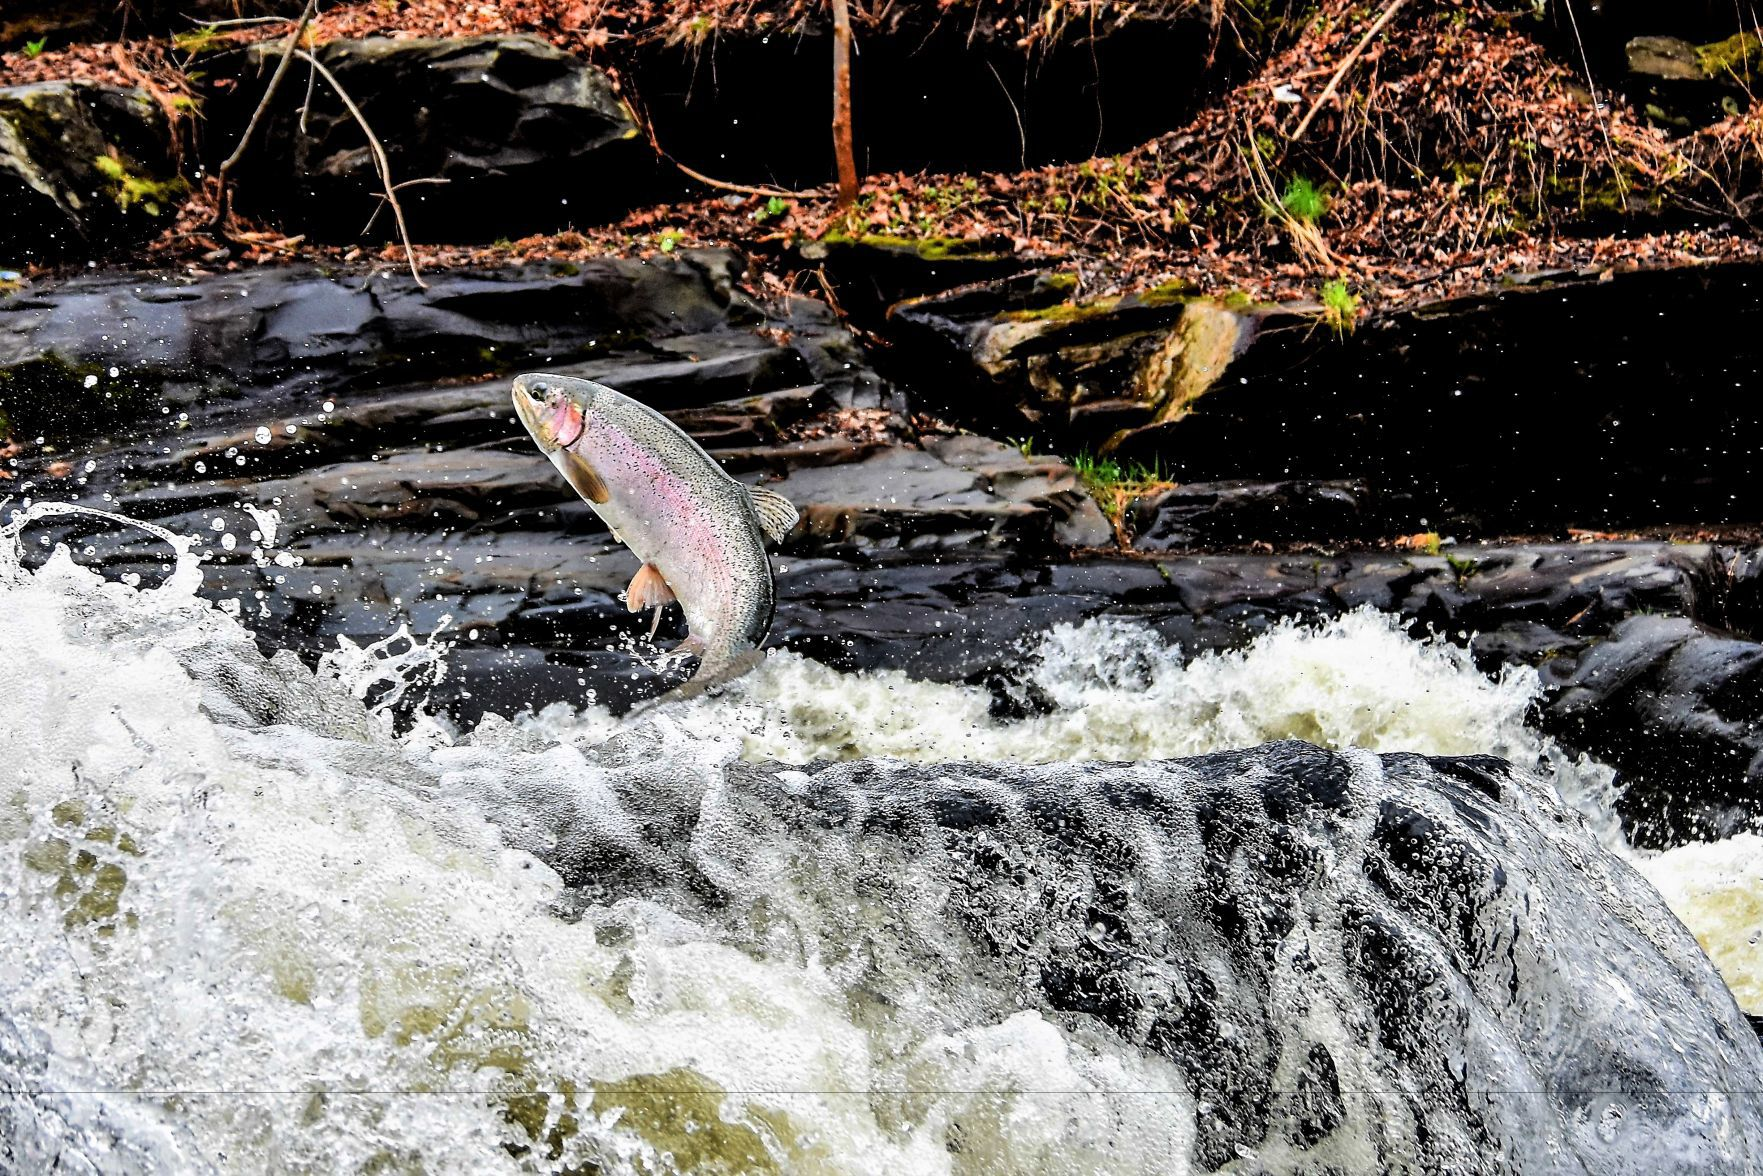 The Steelhead spawning run has brought anglers and viewers to the Willoughby River for years...but is the river changing?